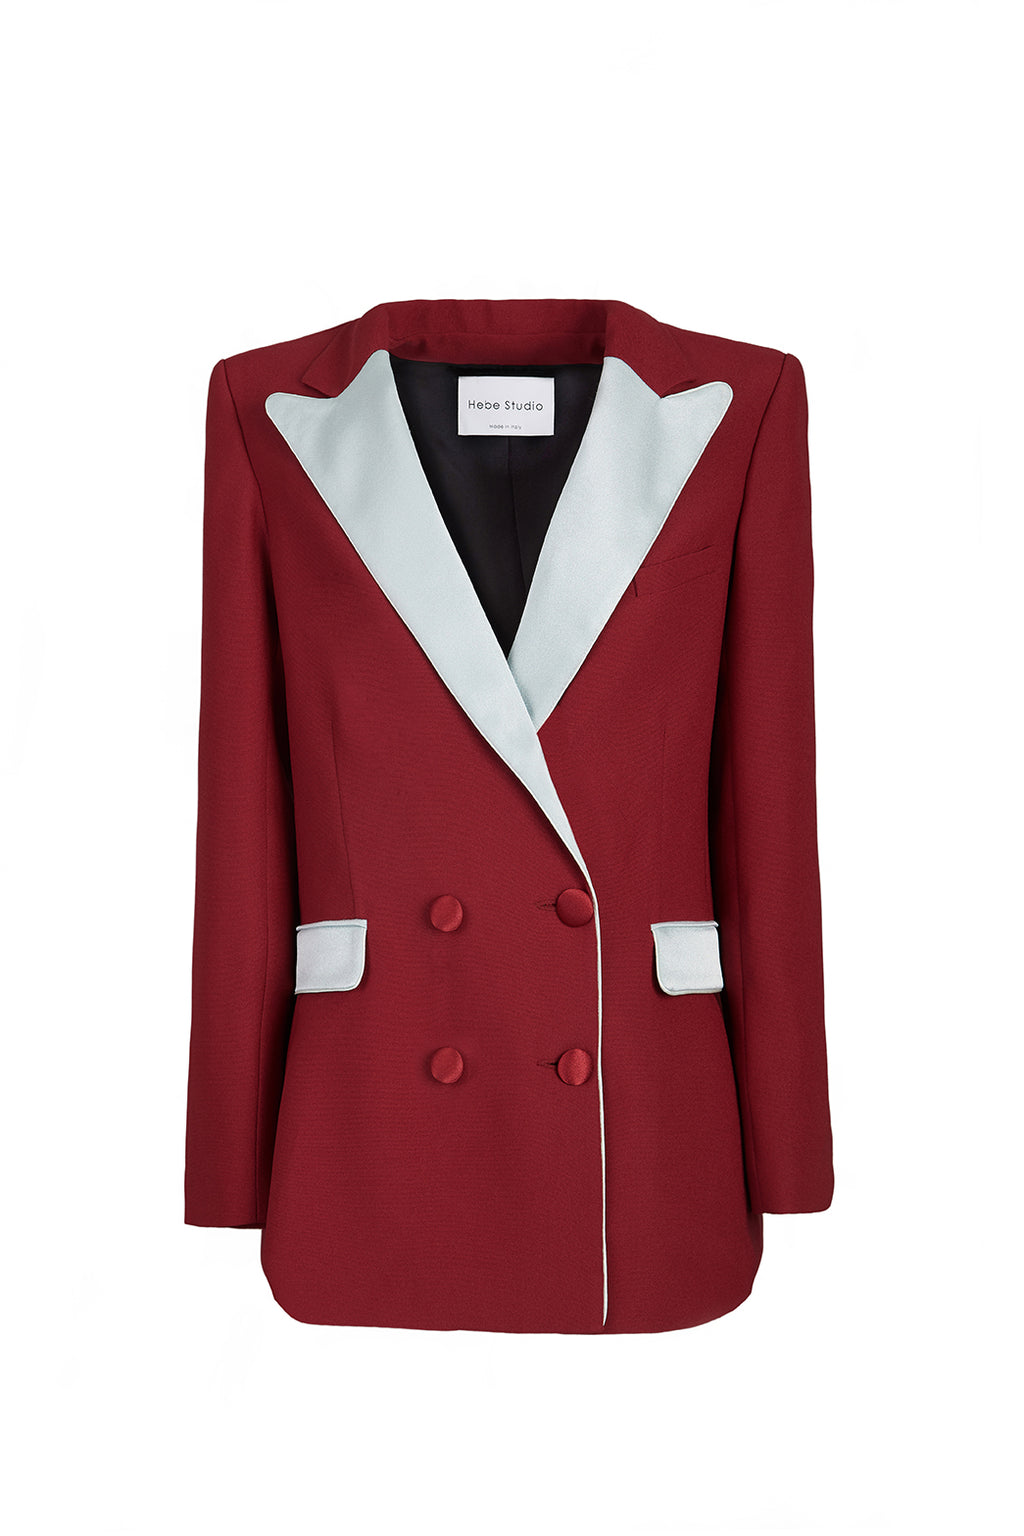 The Red & Teal Cady Bianca Blazer